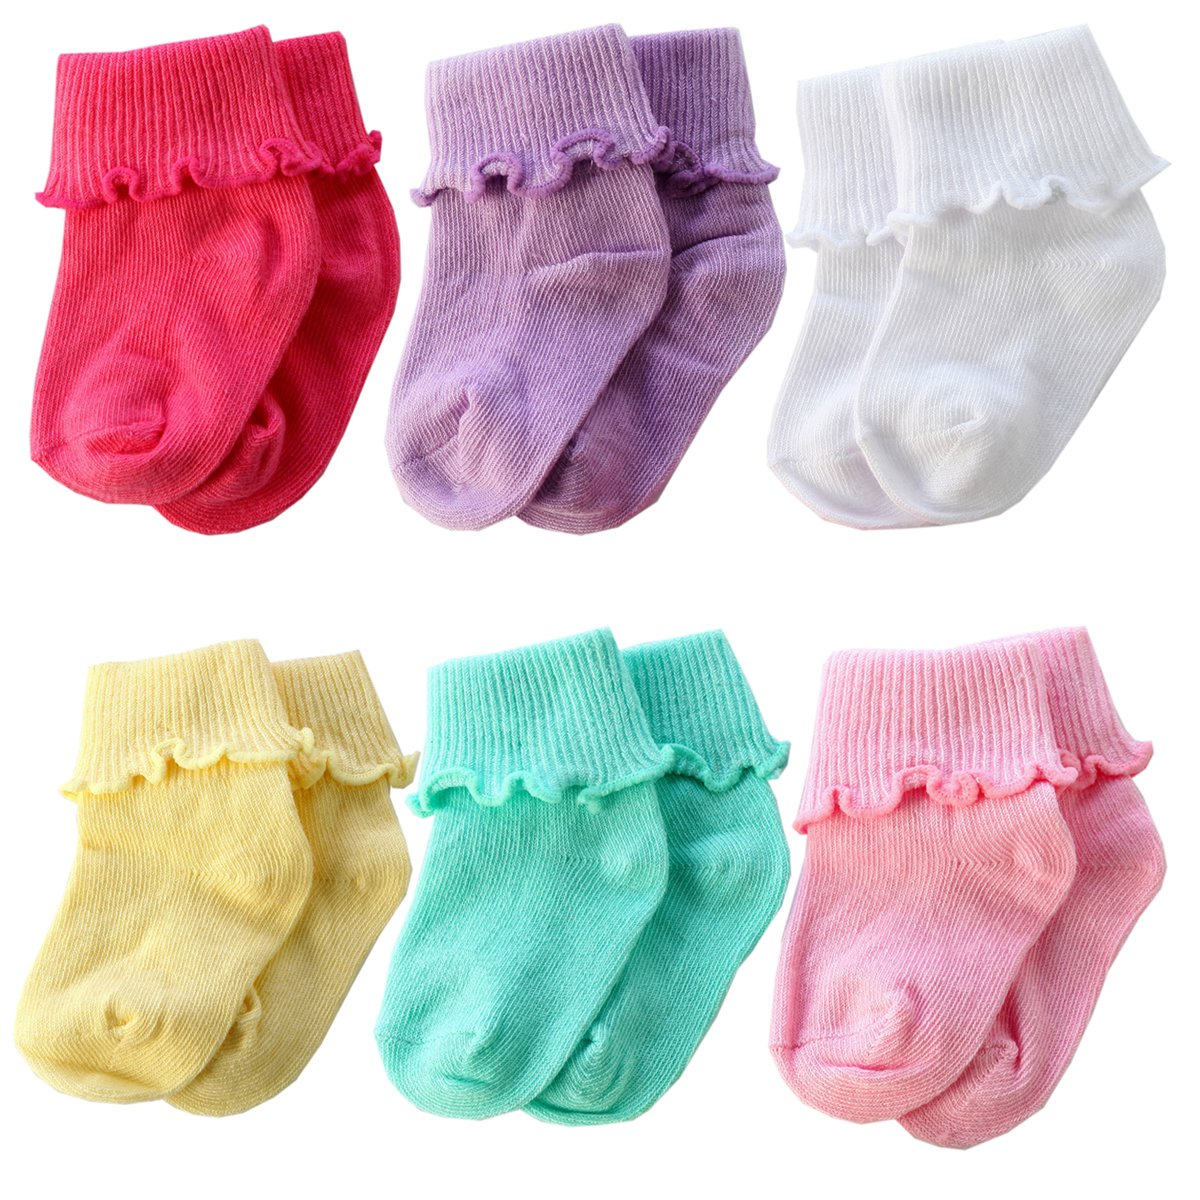 6 Pairs Infant Toddler Baby Colorful Cotton Warm Crew Socks from Sanwit (0-12 month)